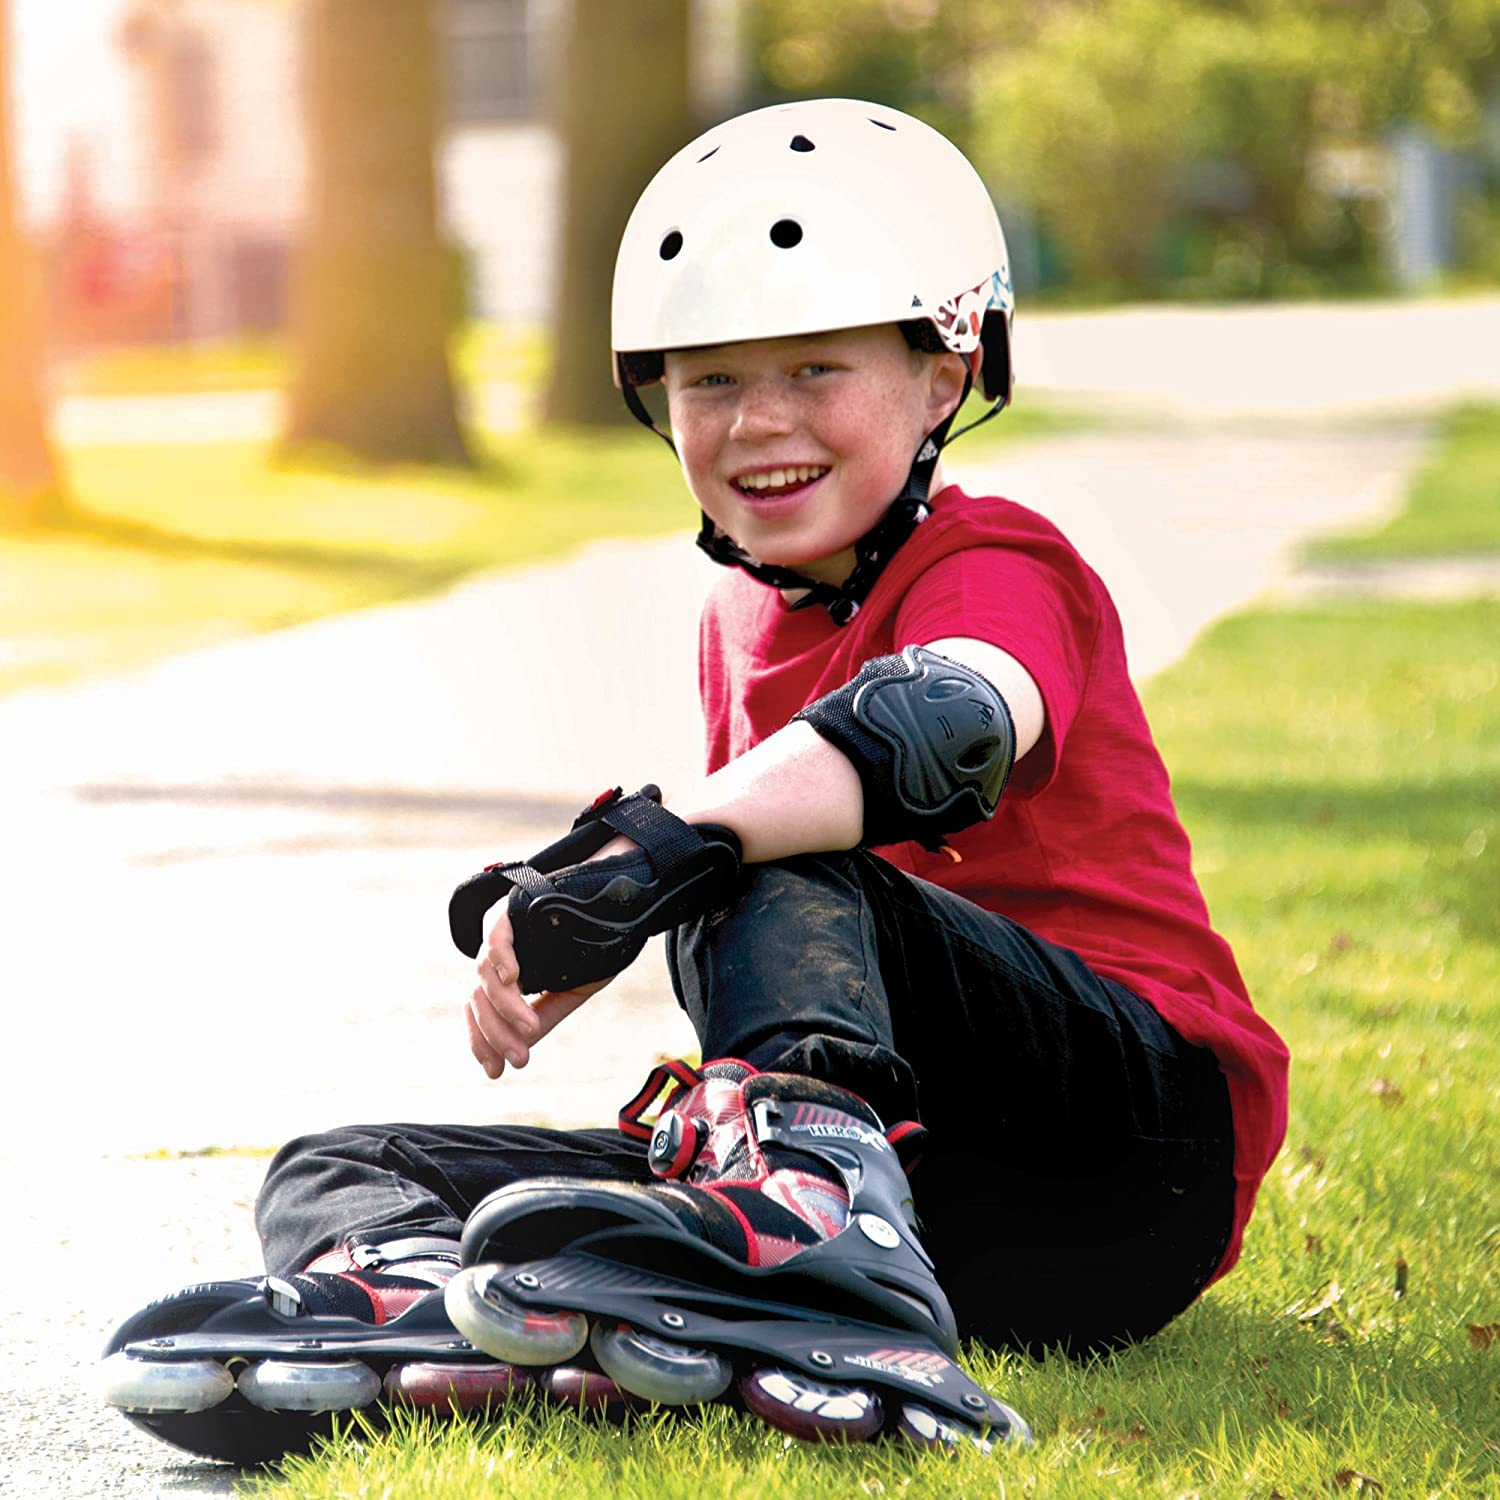 TUOY Kids Youth Elbow Knee Pads Padded Compression Arm Knee Sleeve for Football Basketball Baseball Soccer Protector Gear 1 Pair